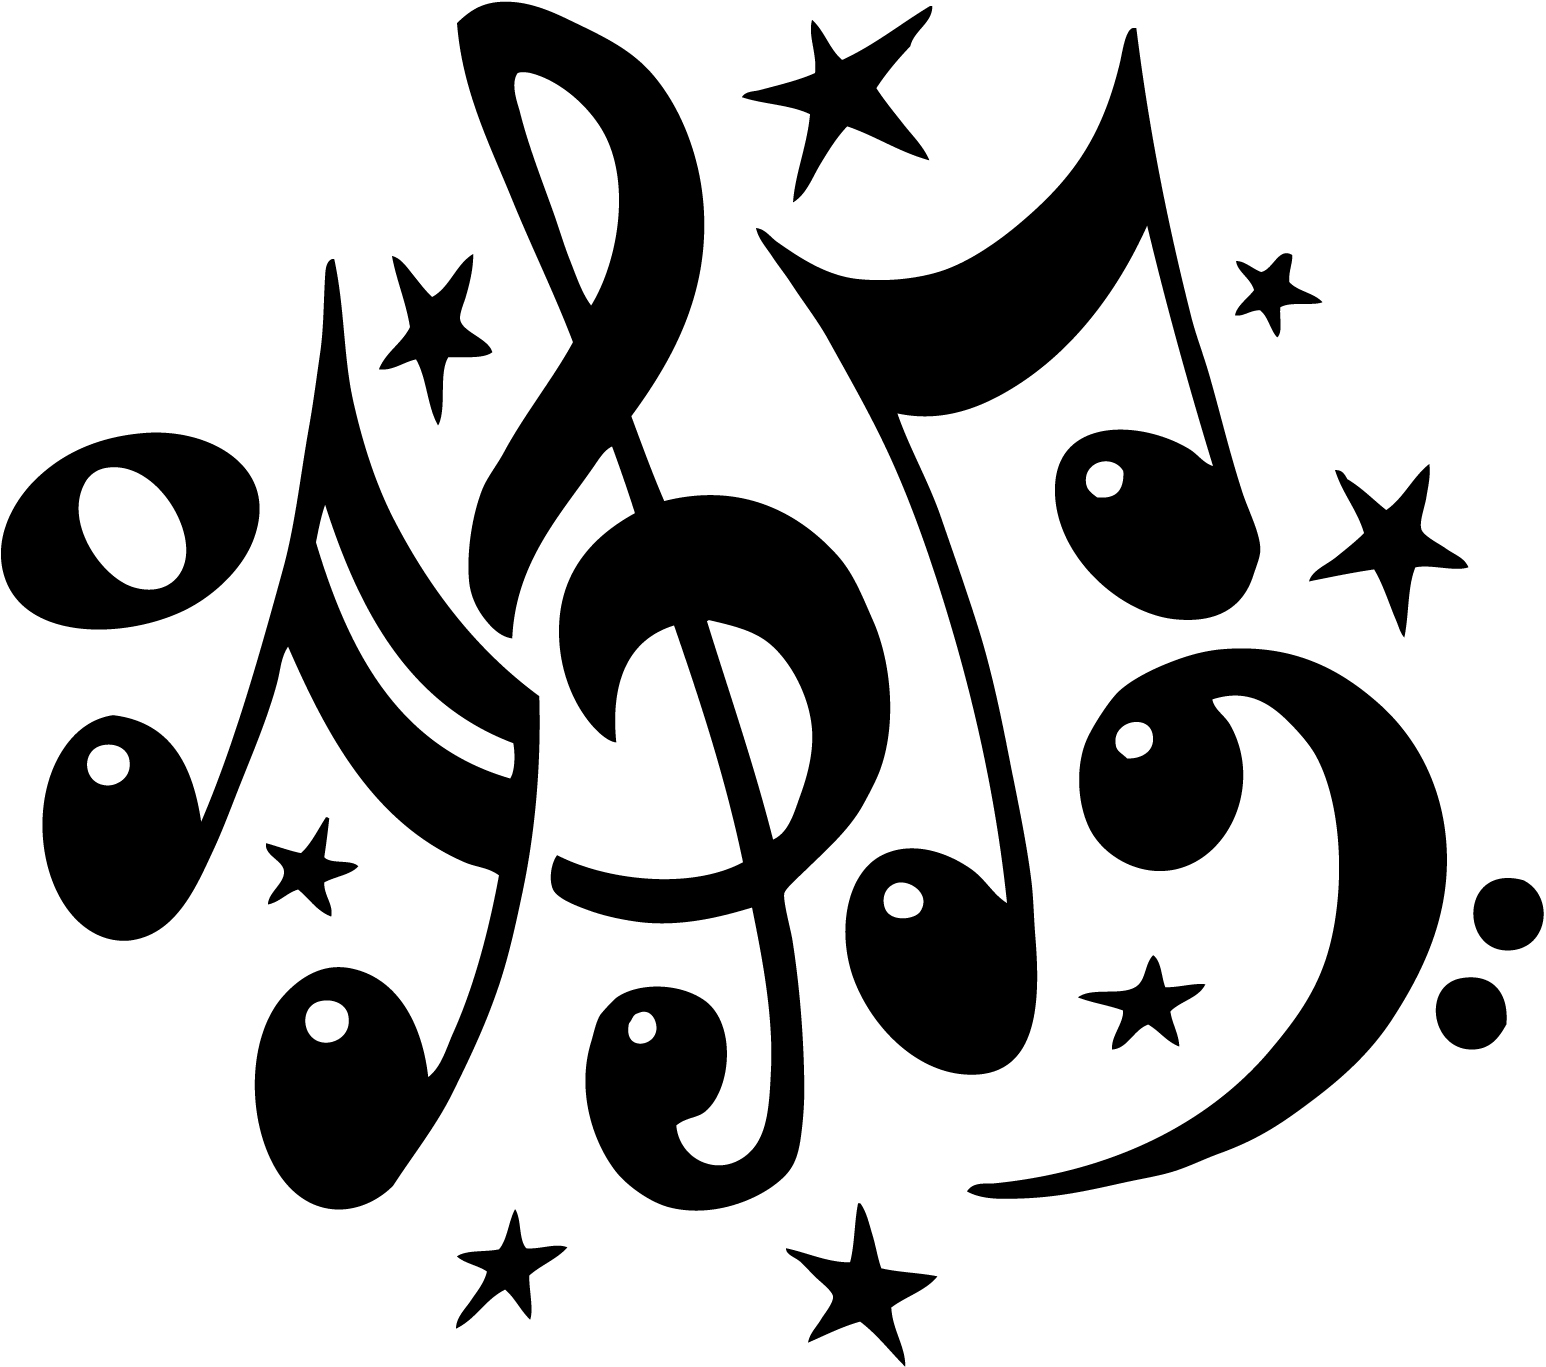 Mu music notes tattoo designs -  Music Notes Tattoos